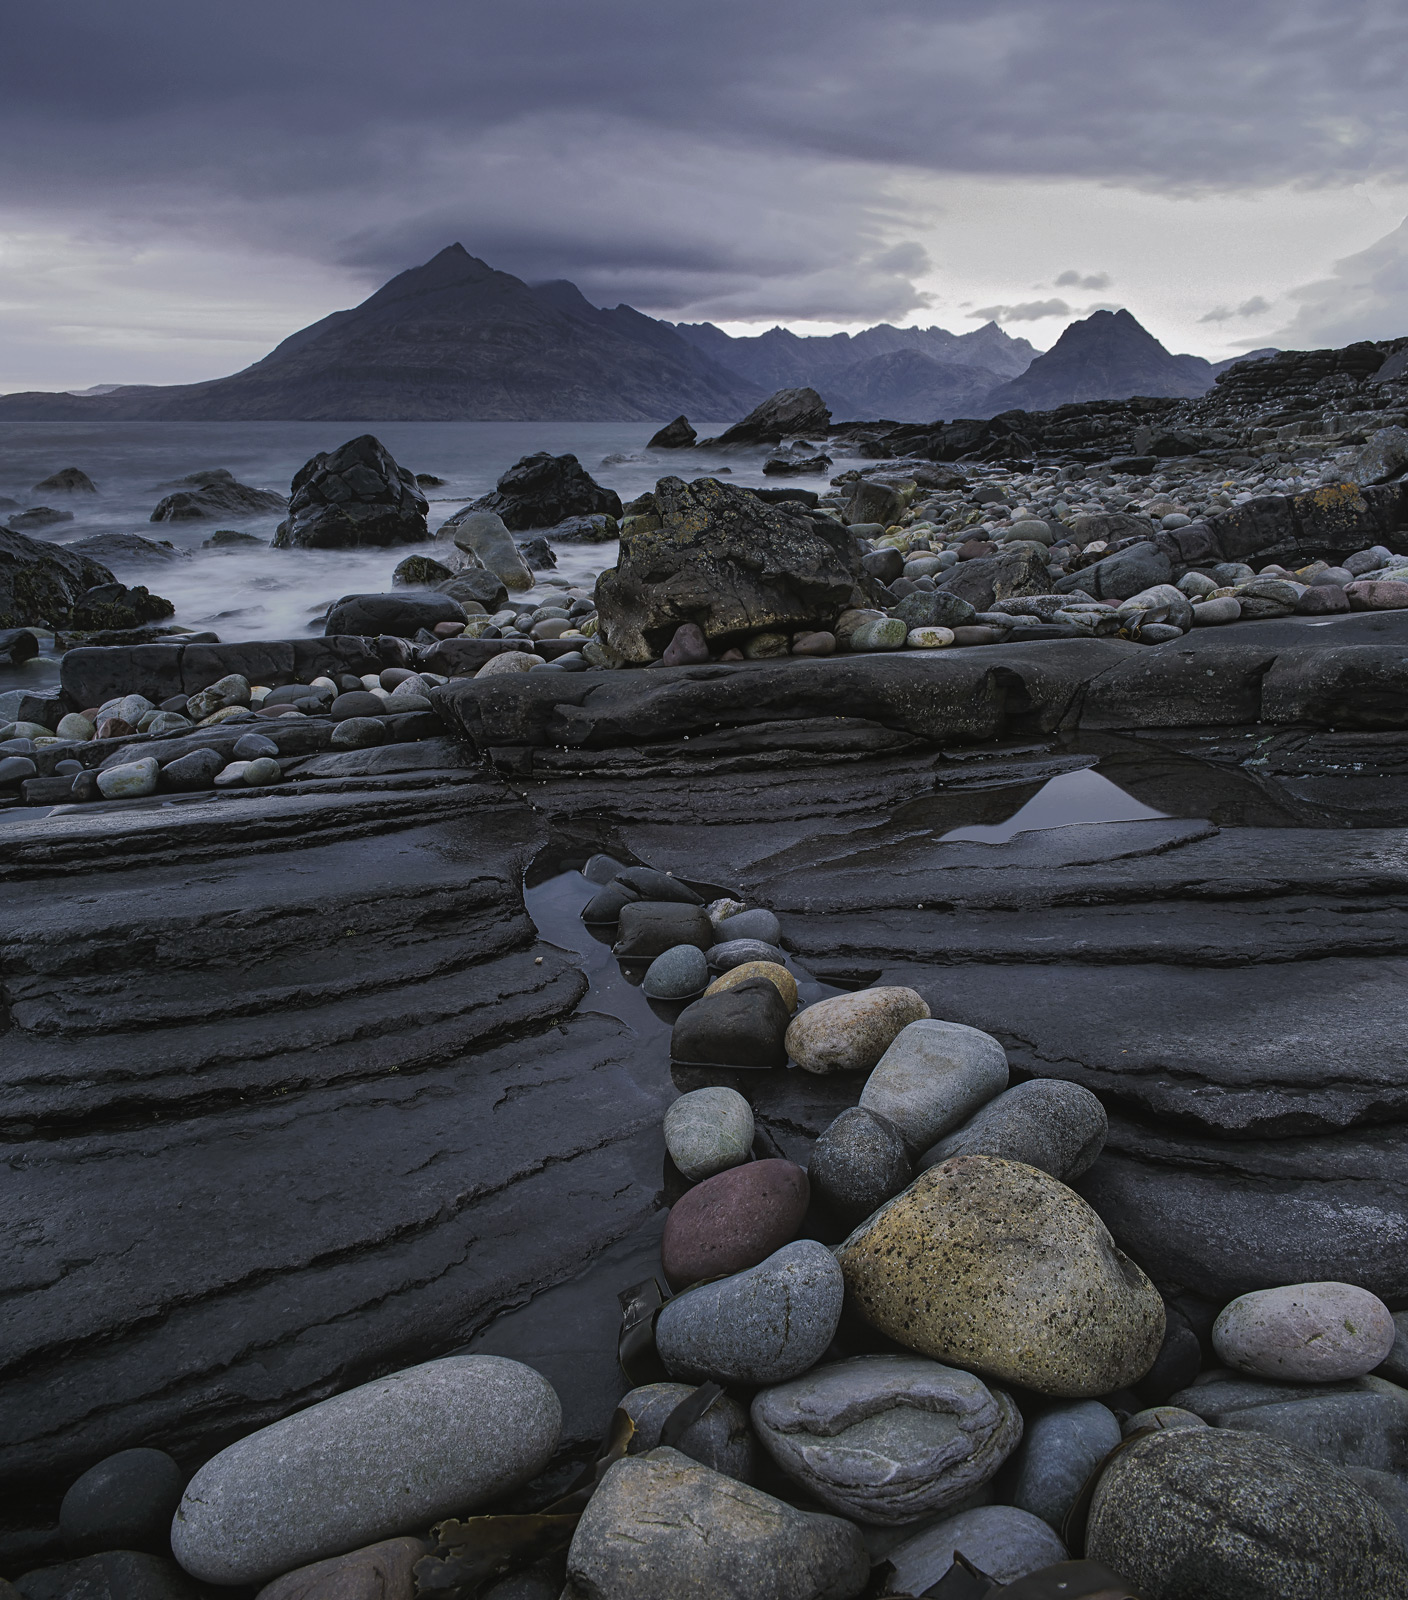 Elgol has a fascinating collection of rocks and pebbles of different shapes and sizes but above all of different hues....